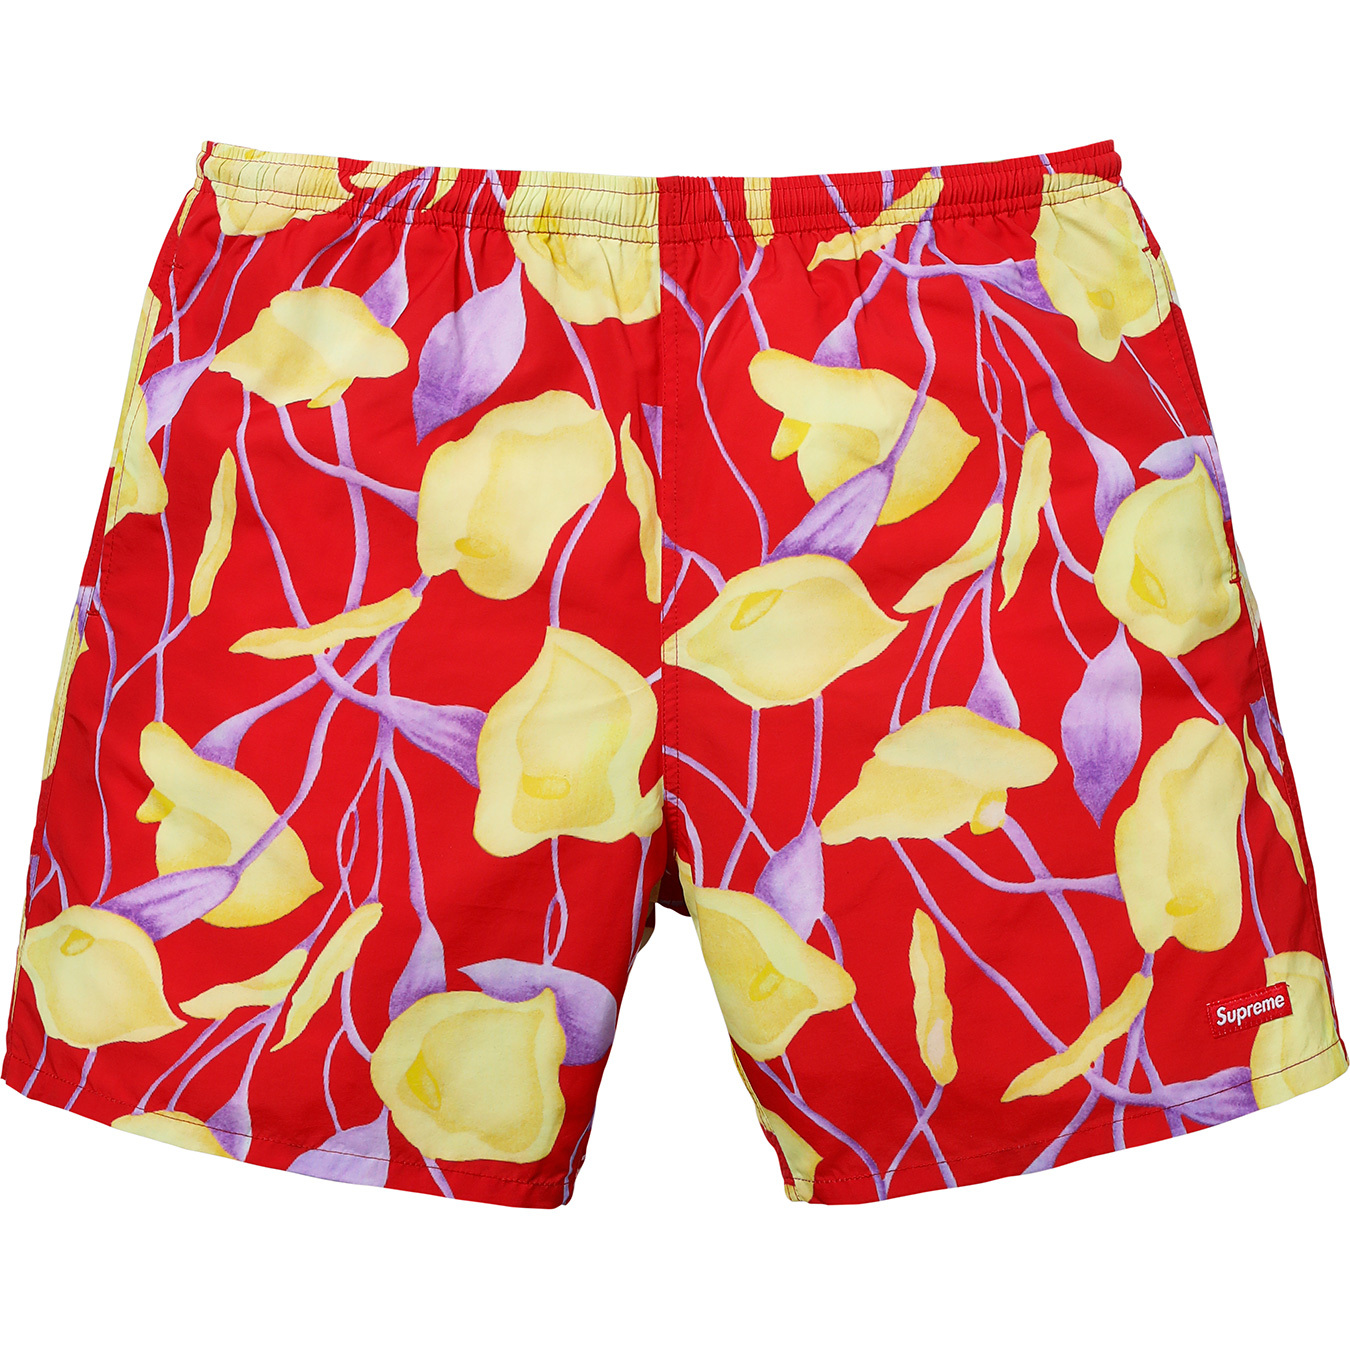 supreme-18ss-spring-summer-nylon-water-short